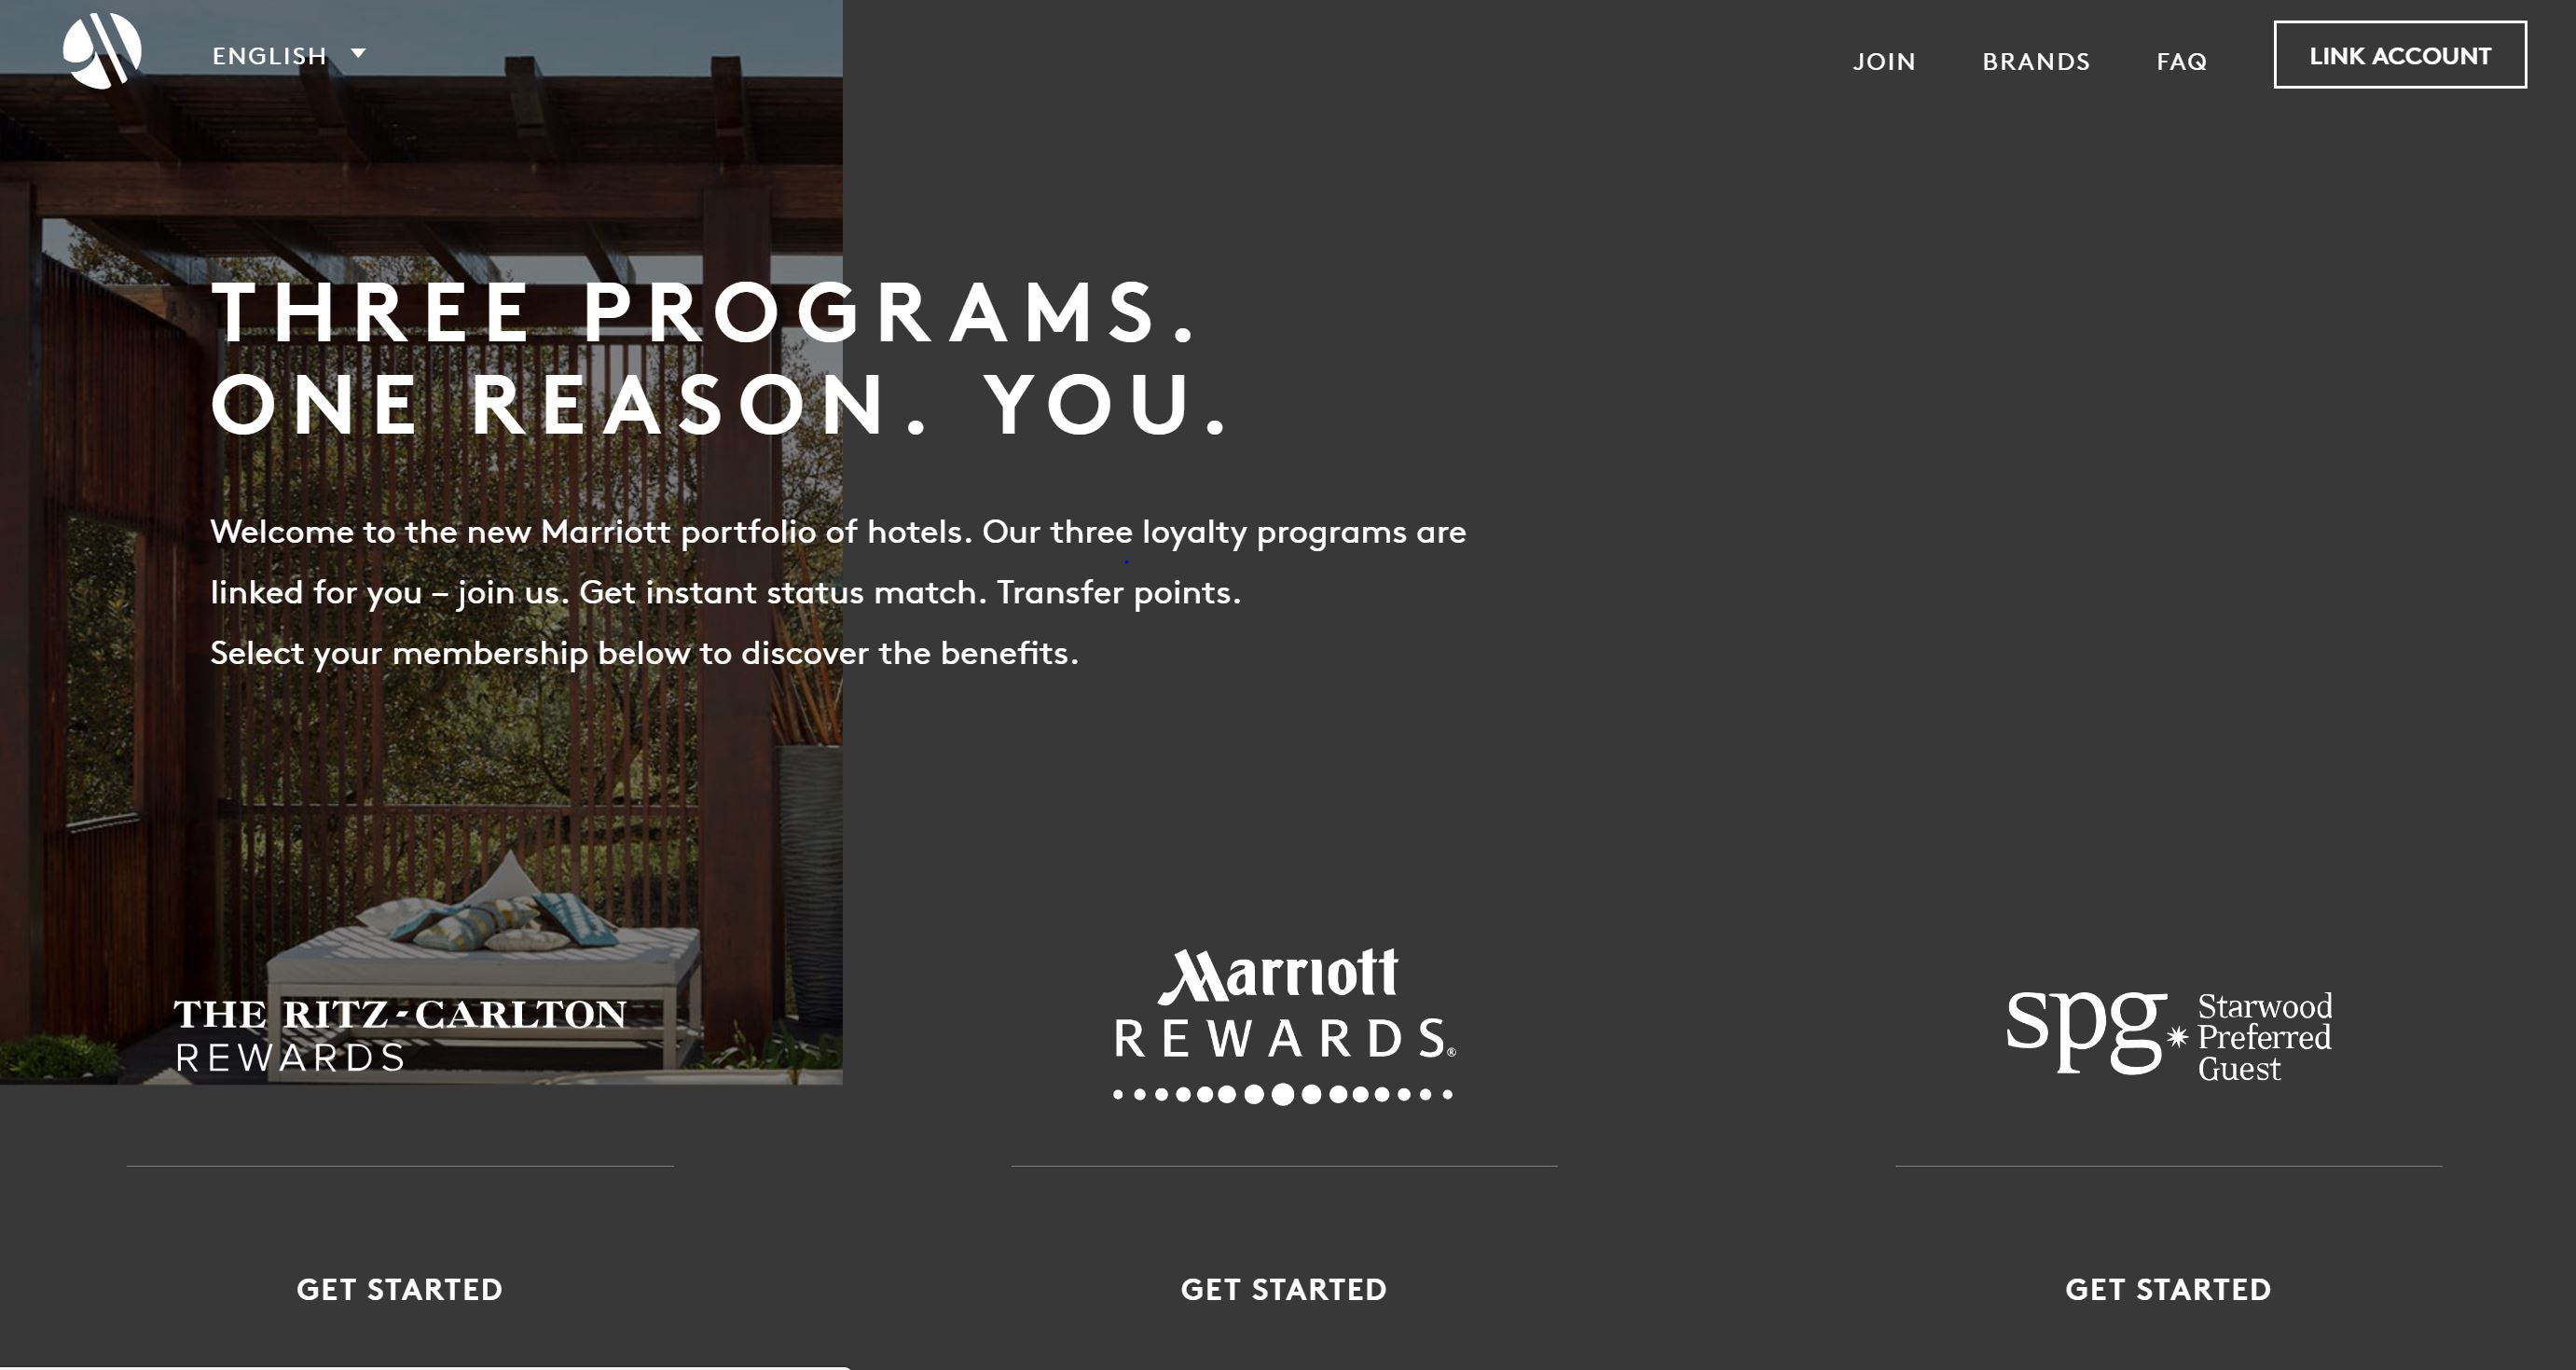 spg and marriott merger means status match and 3 1 points